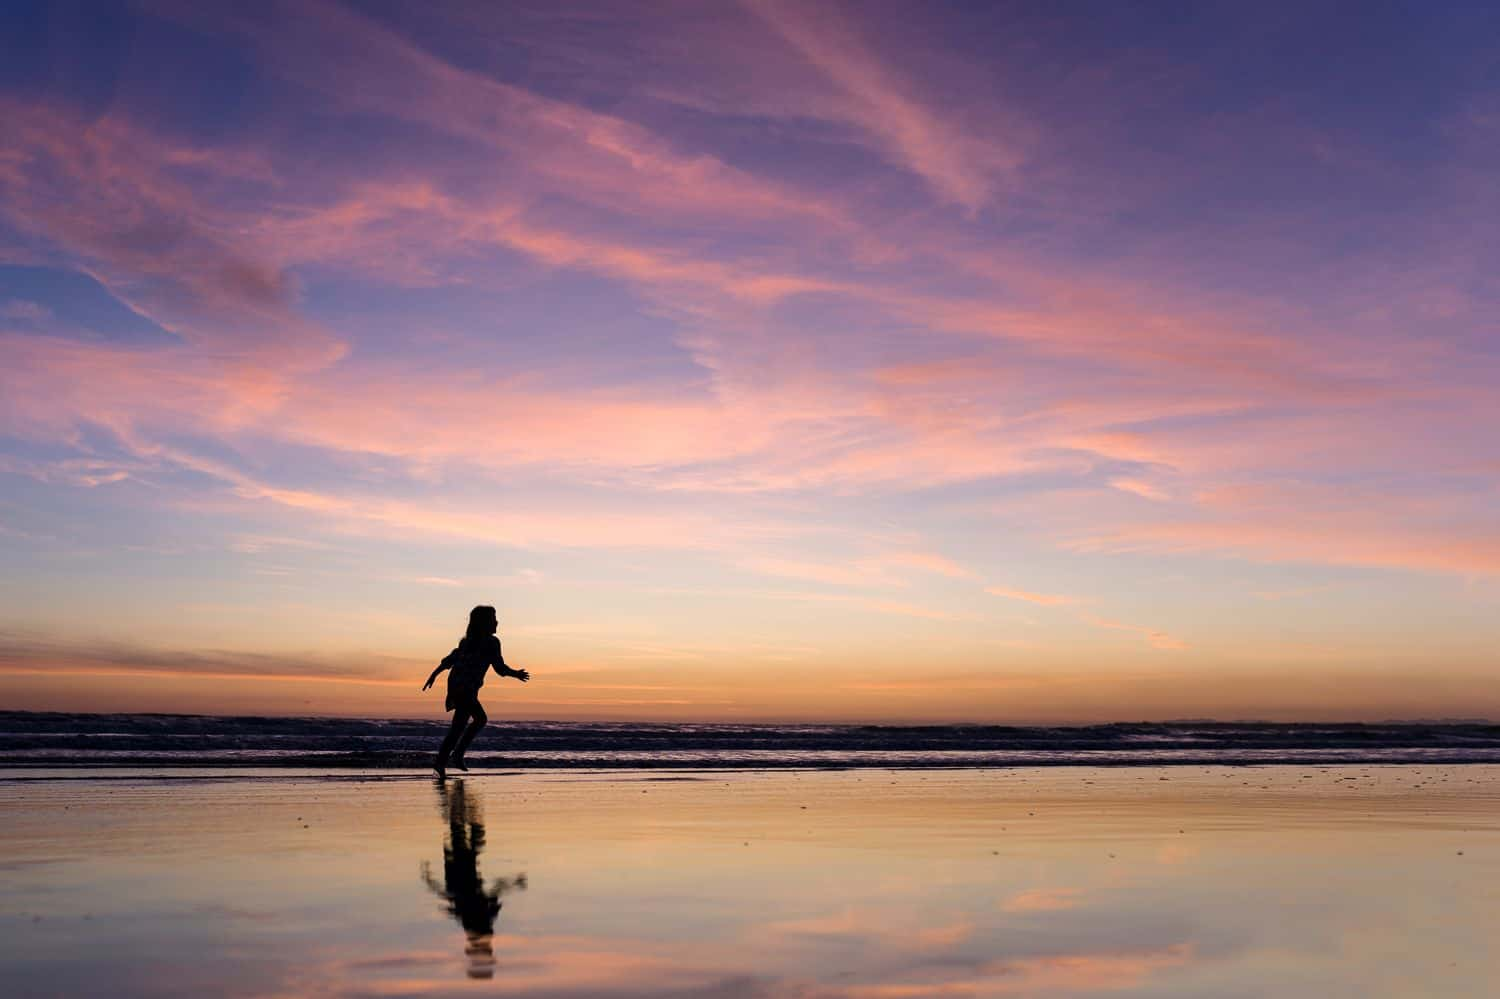 Silhouette of a child reflected in the low tide of a beach at sunset.